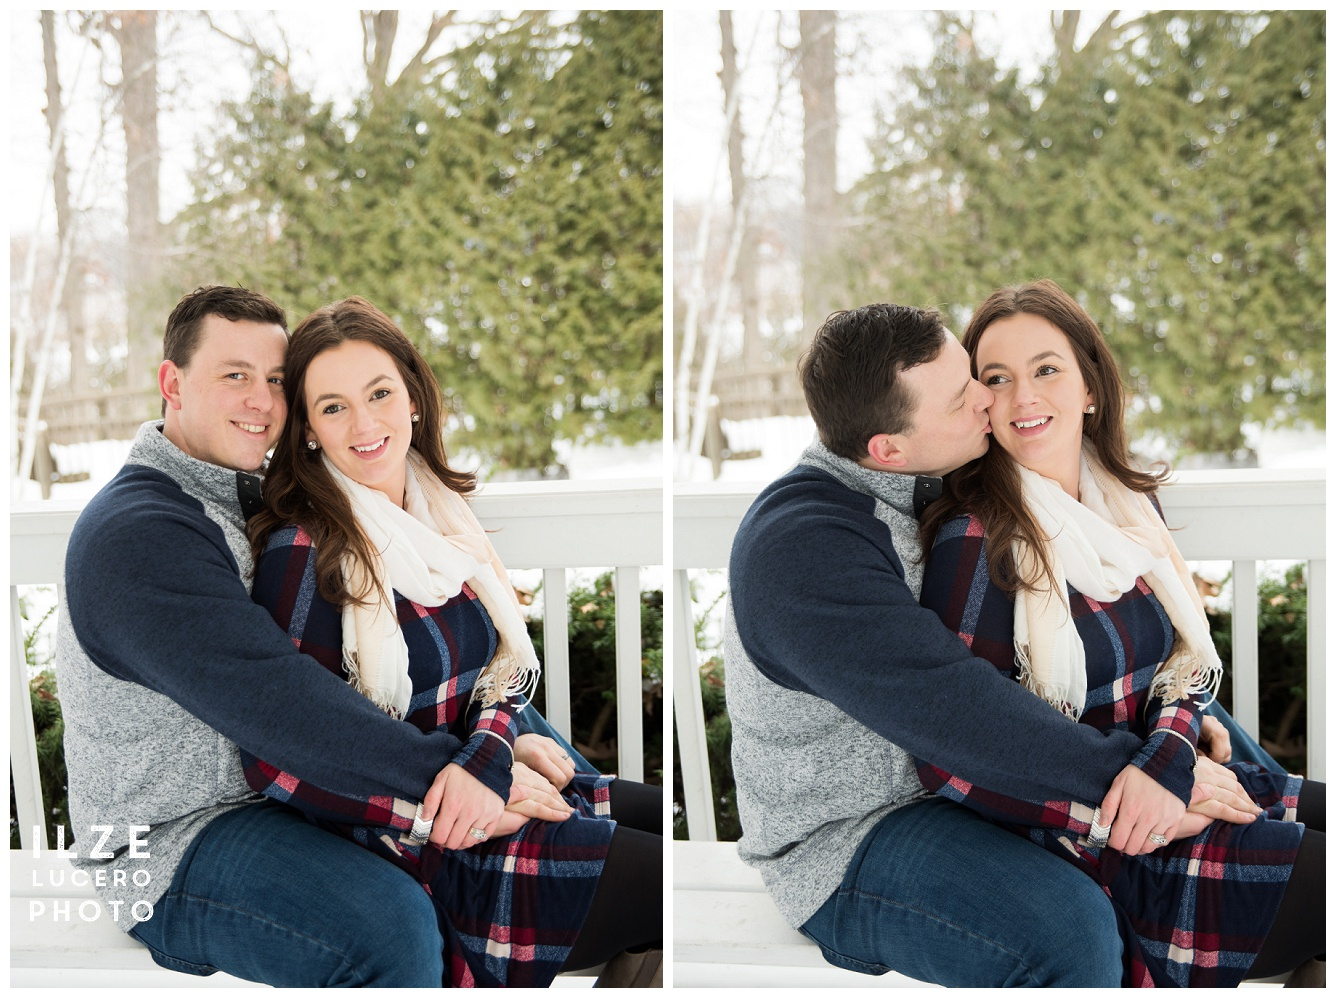 Clarkston photo shoot -  couples photo session